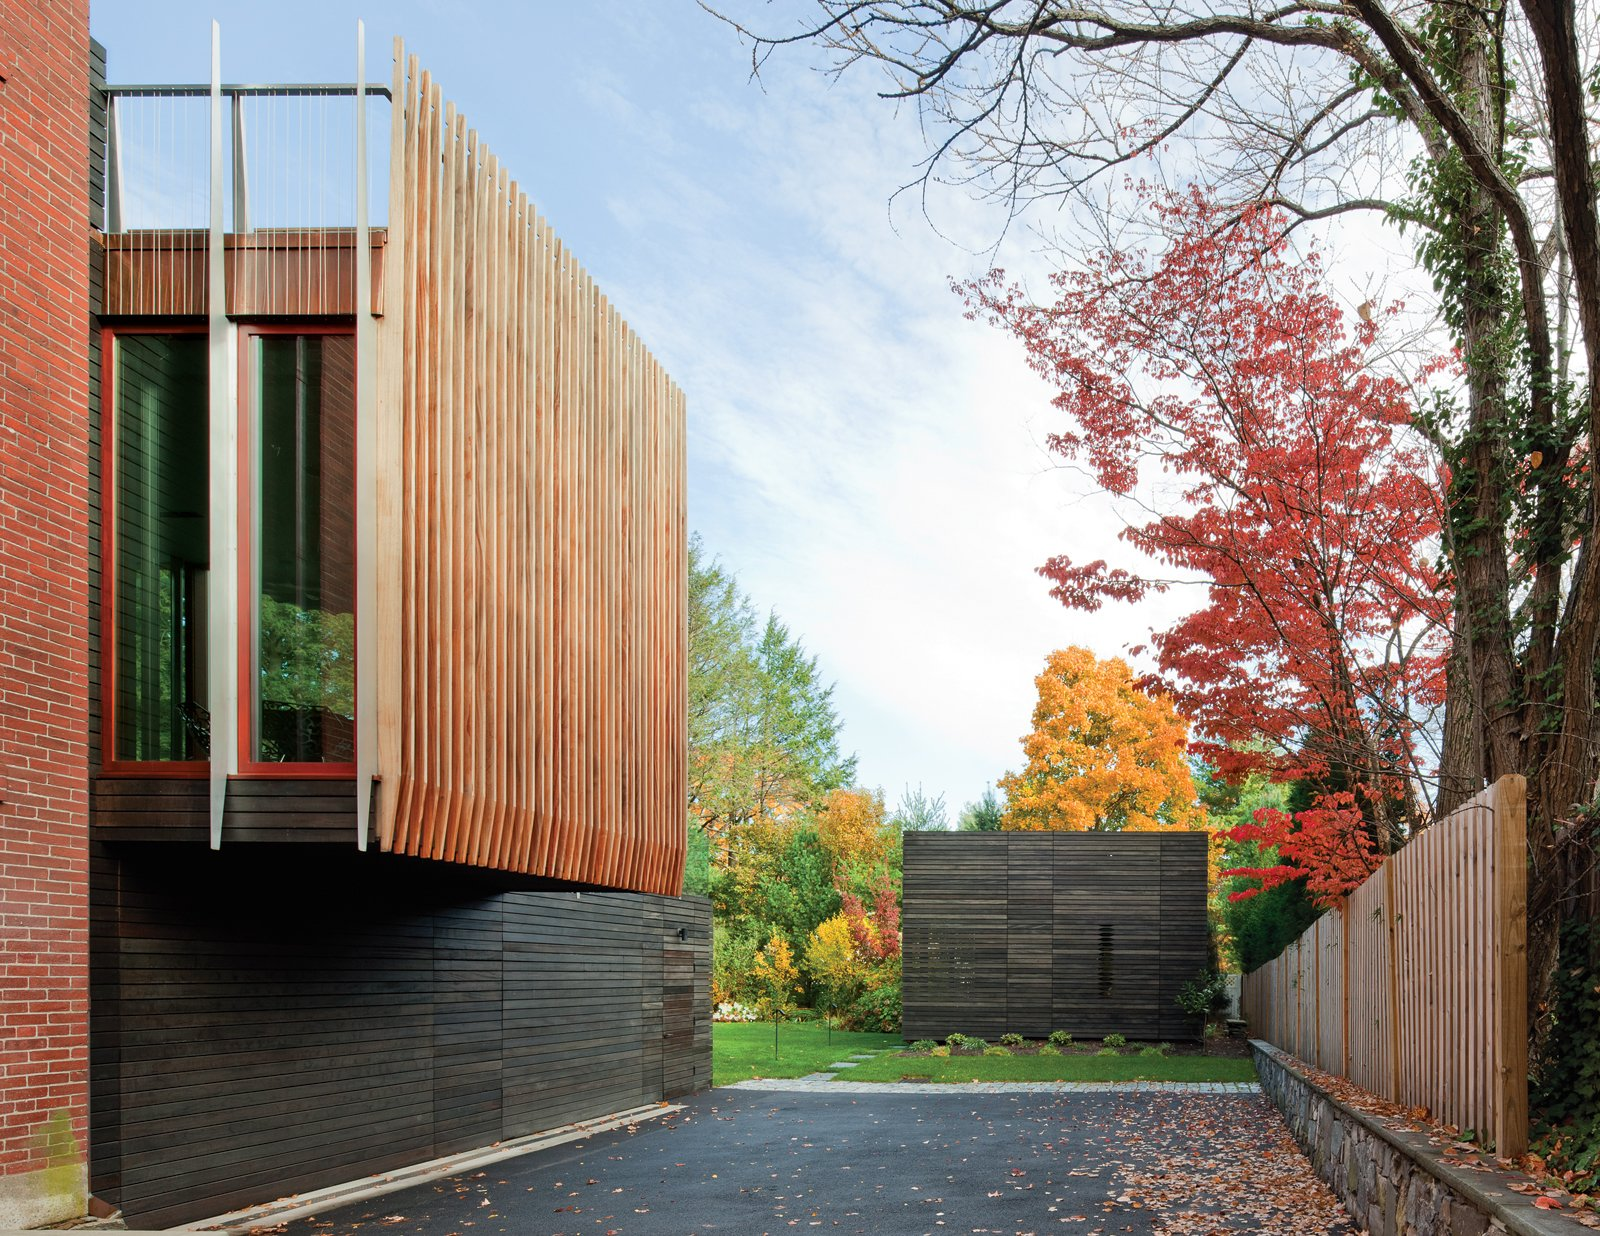 """Exterior Architecture firm NADAAA planned a striated addition to a brick neo-Georgian house in Boston with the owners' primary goal in mind: to engage with the outdoors year-round. The walls of the rear kitchen and living space are virtually all glass, allowing sight lines to the existing gardens and new pool house through a series of framed vignettes onto the backyard landscape. The glass box is bookended by uniform """"fins"""" that mark the edge of each picture window, as shown here. Photo by John Horner.  Best Photos from Facade Focus: Wood"""